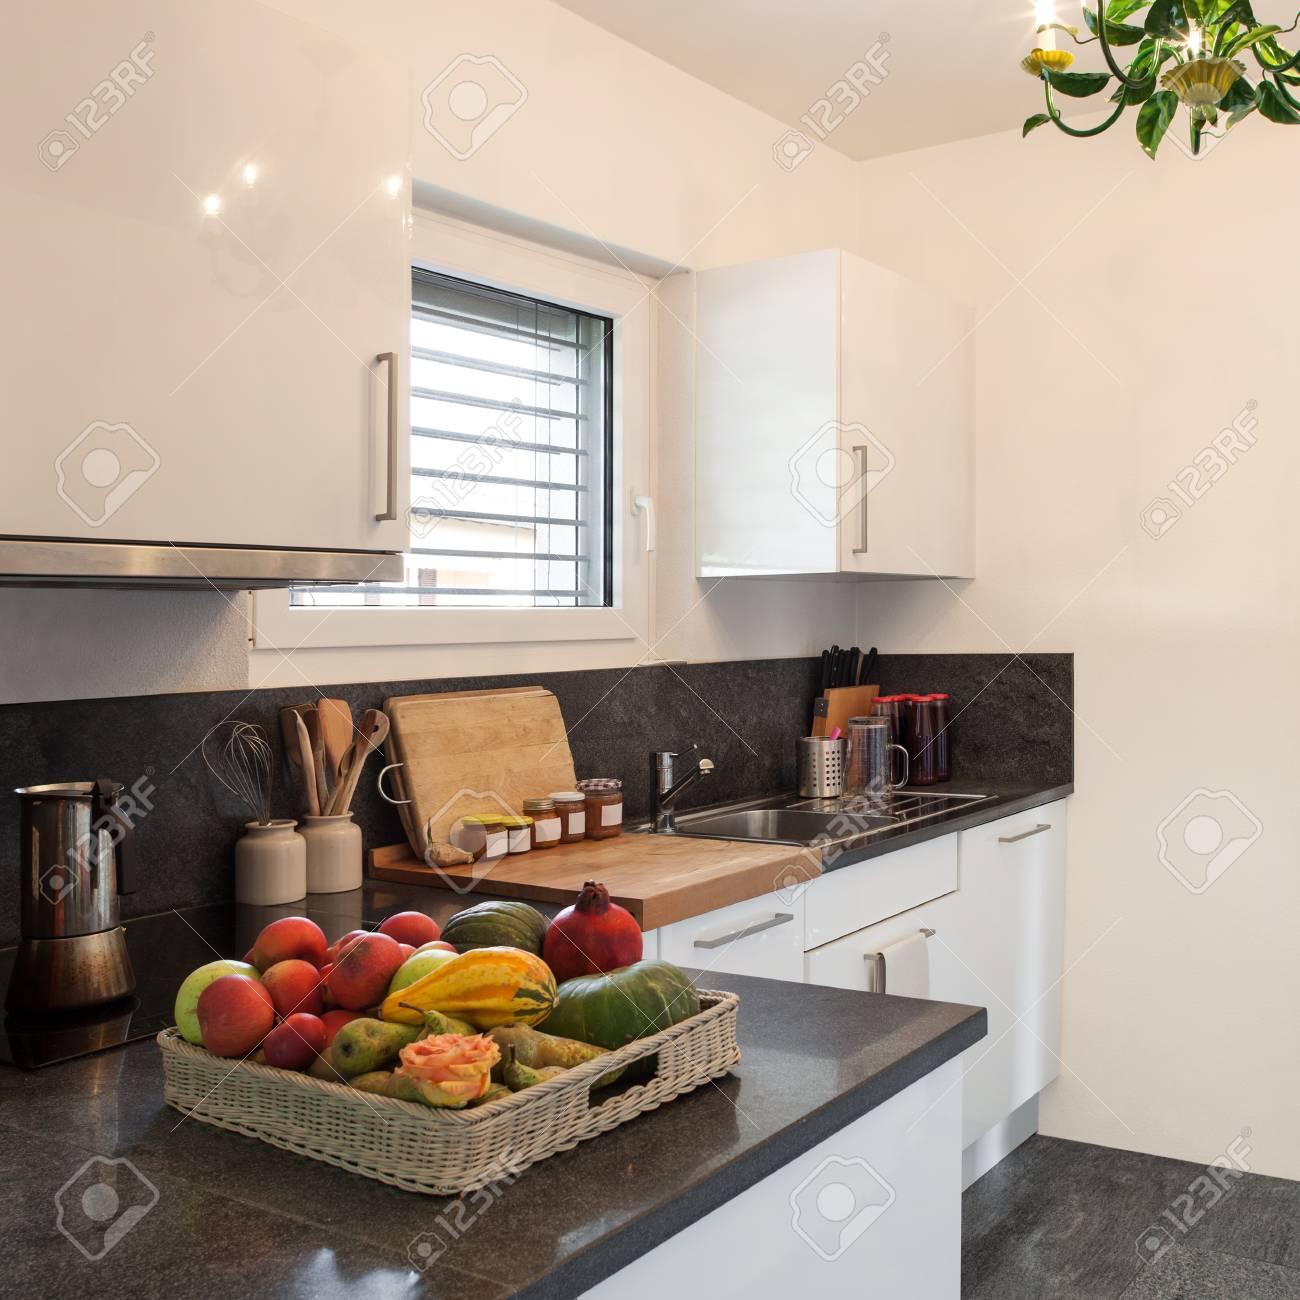 Nice domestic kitchen of a home, fruit basket in the foreground